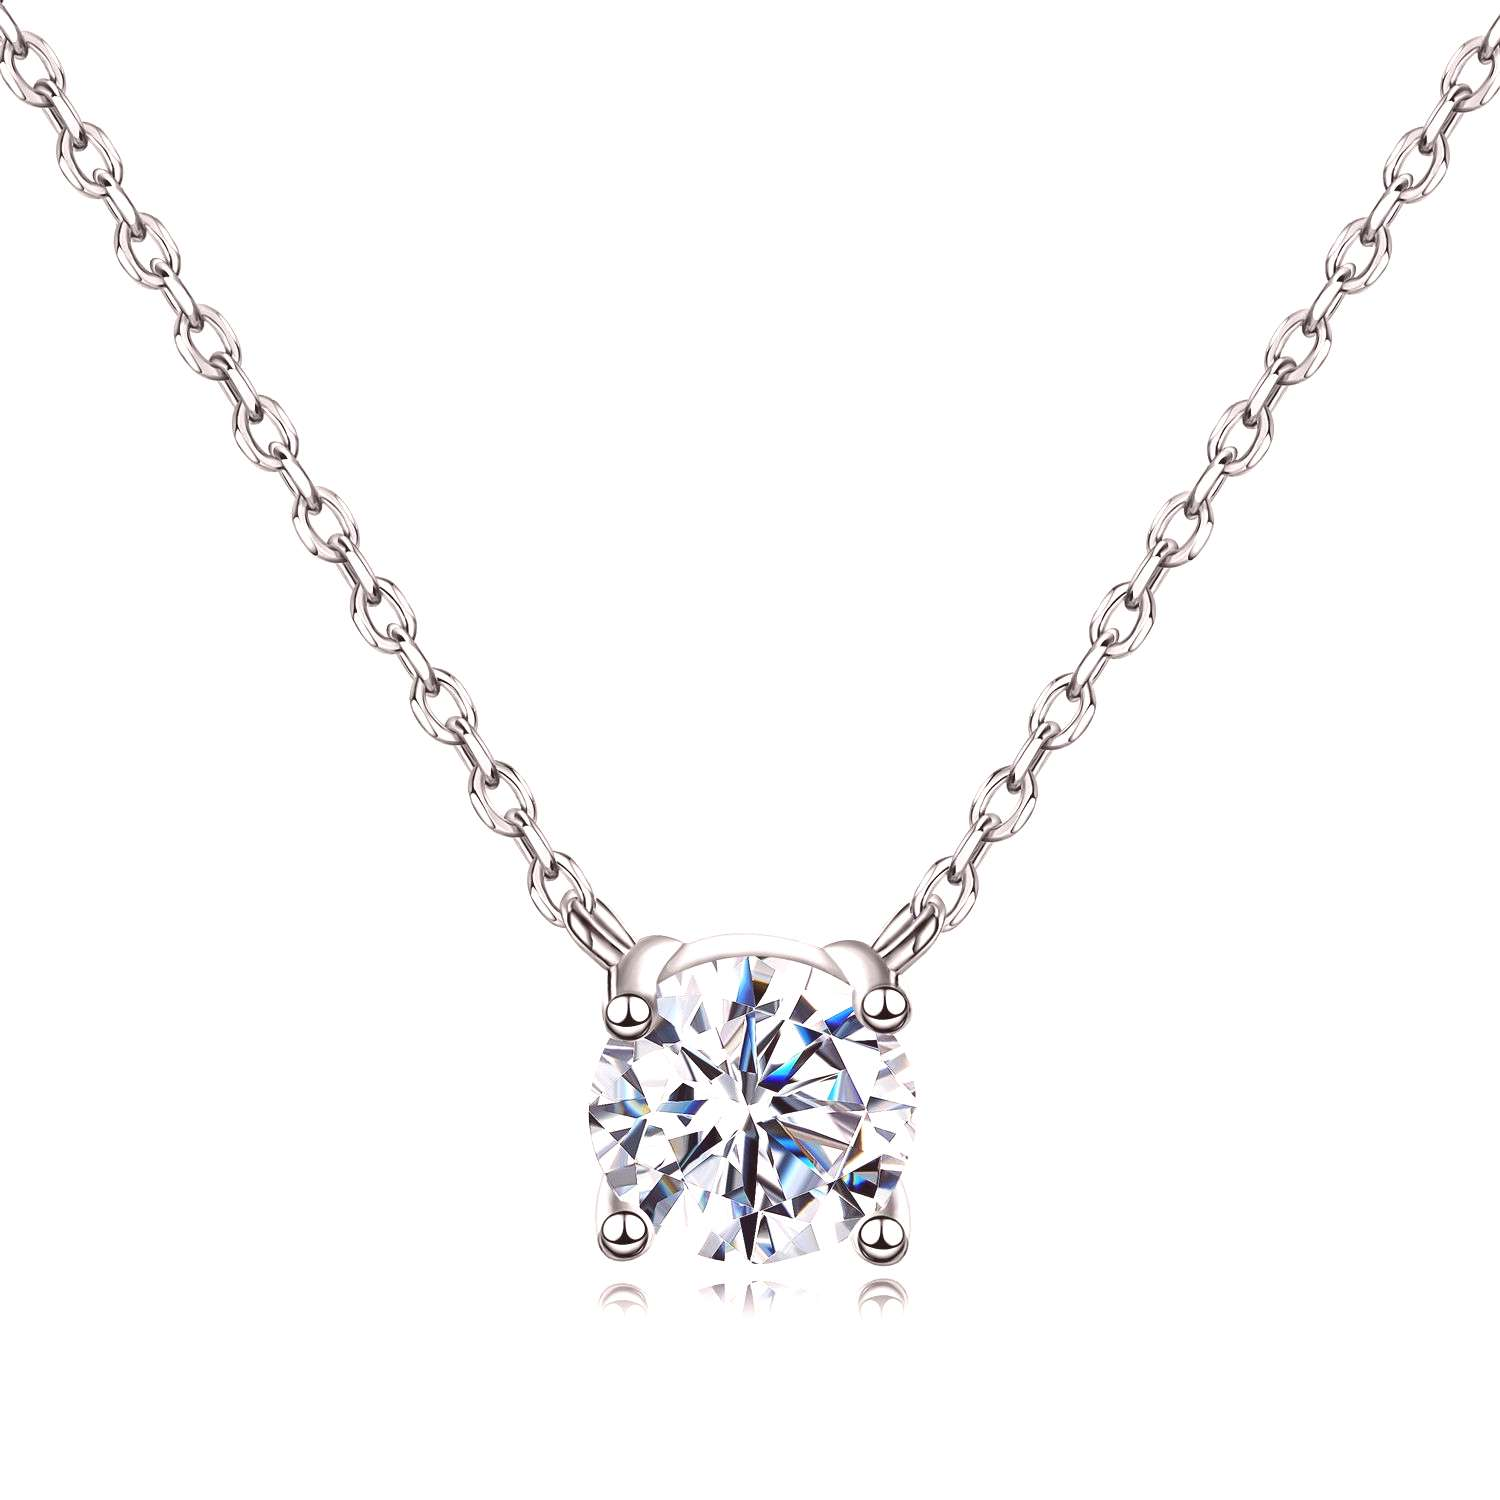 14K Gold Plated Cubic Zirconia Necklace for Women-1.5 Carat CZ Simple Dainty Choker Necklace This c